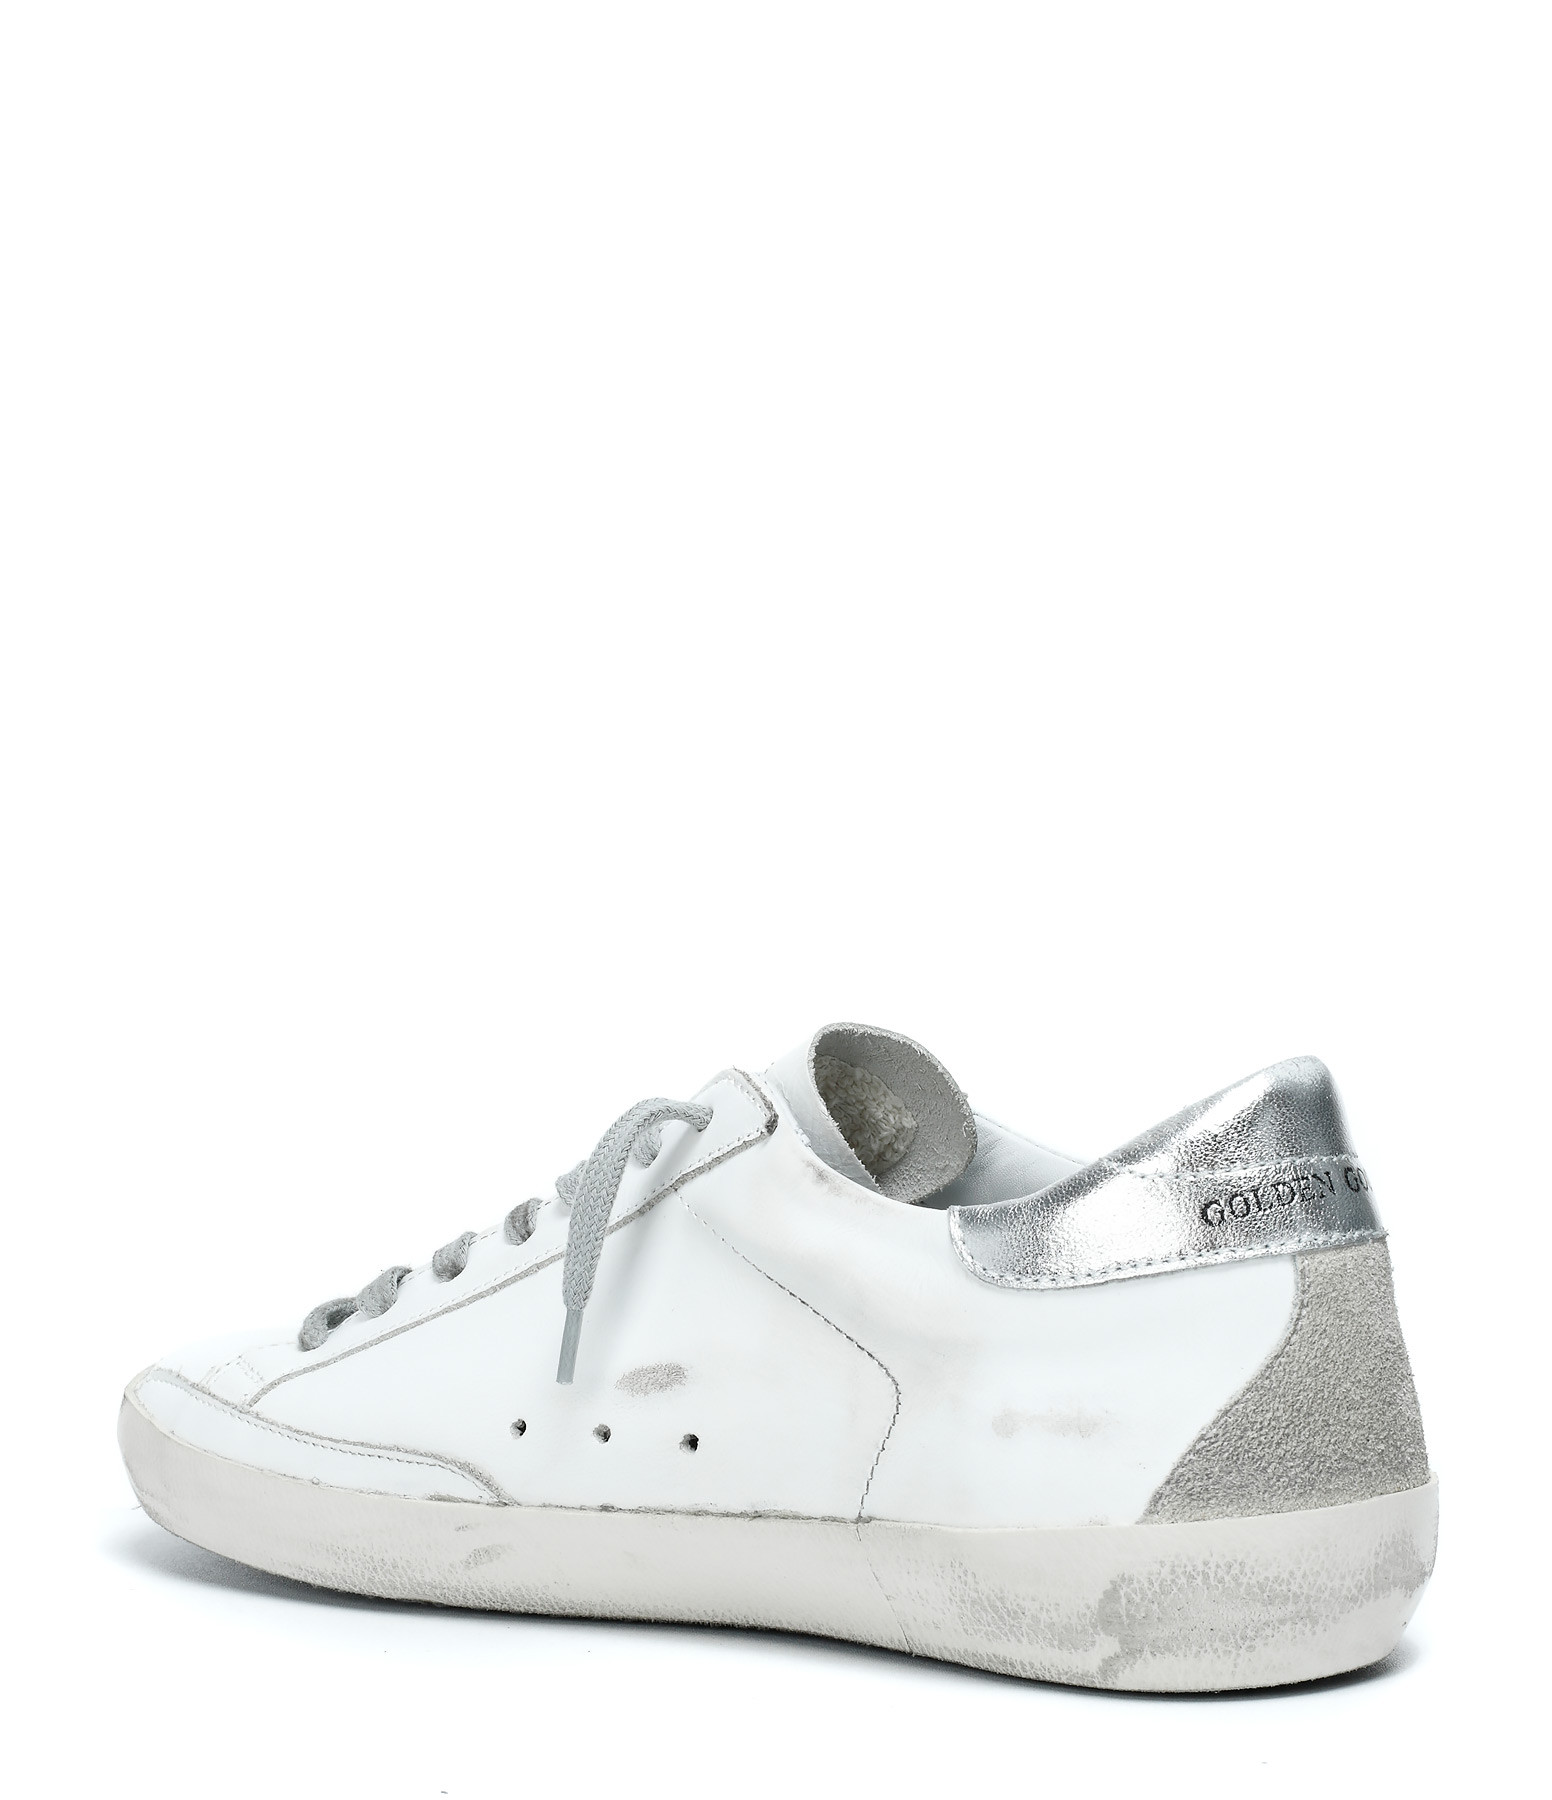 GOLDEN GOOSE - Sneakers Baskets Homme Superstar Noir Argenté Métal